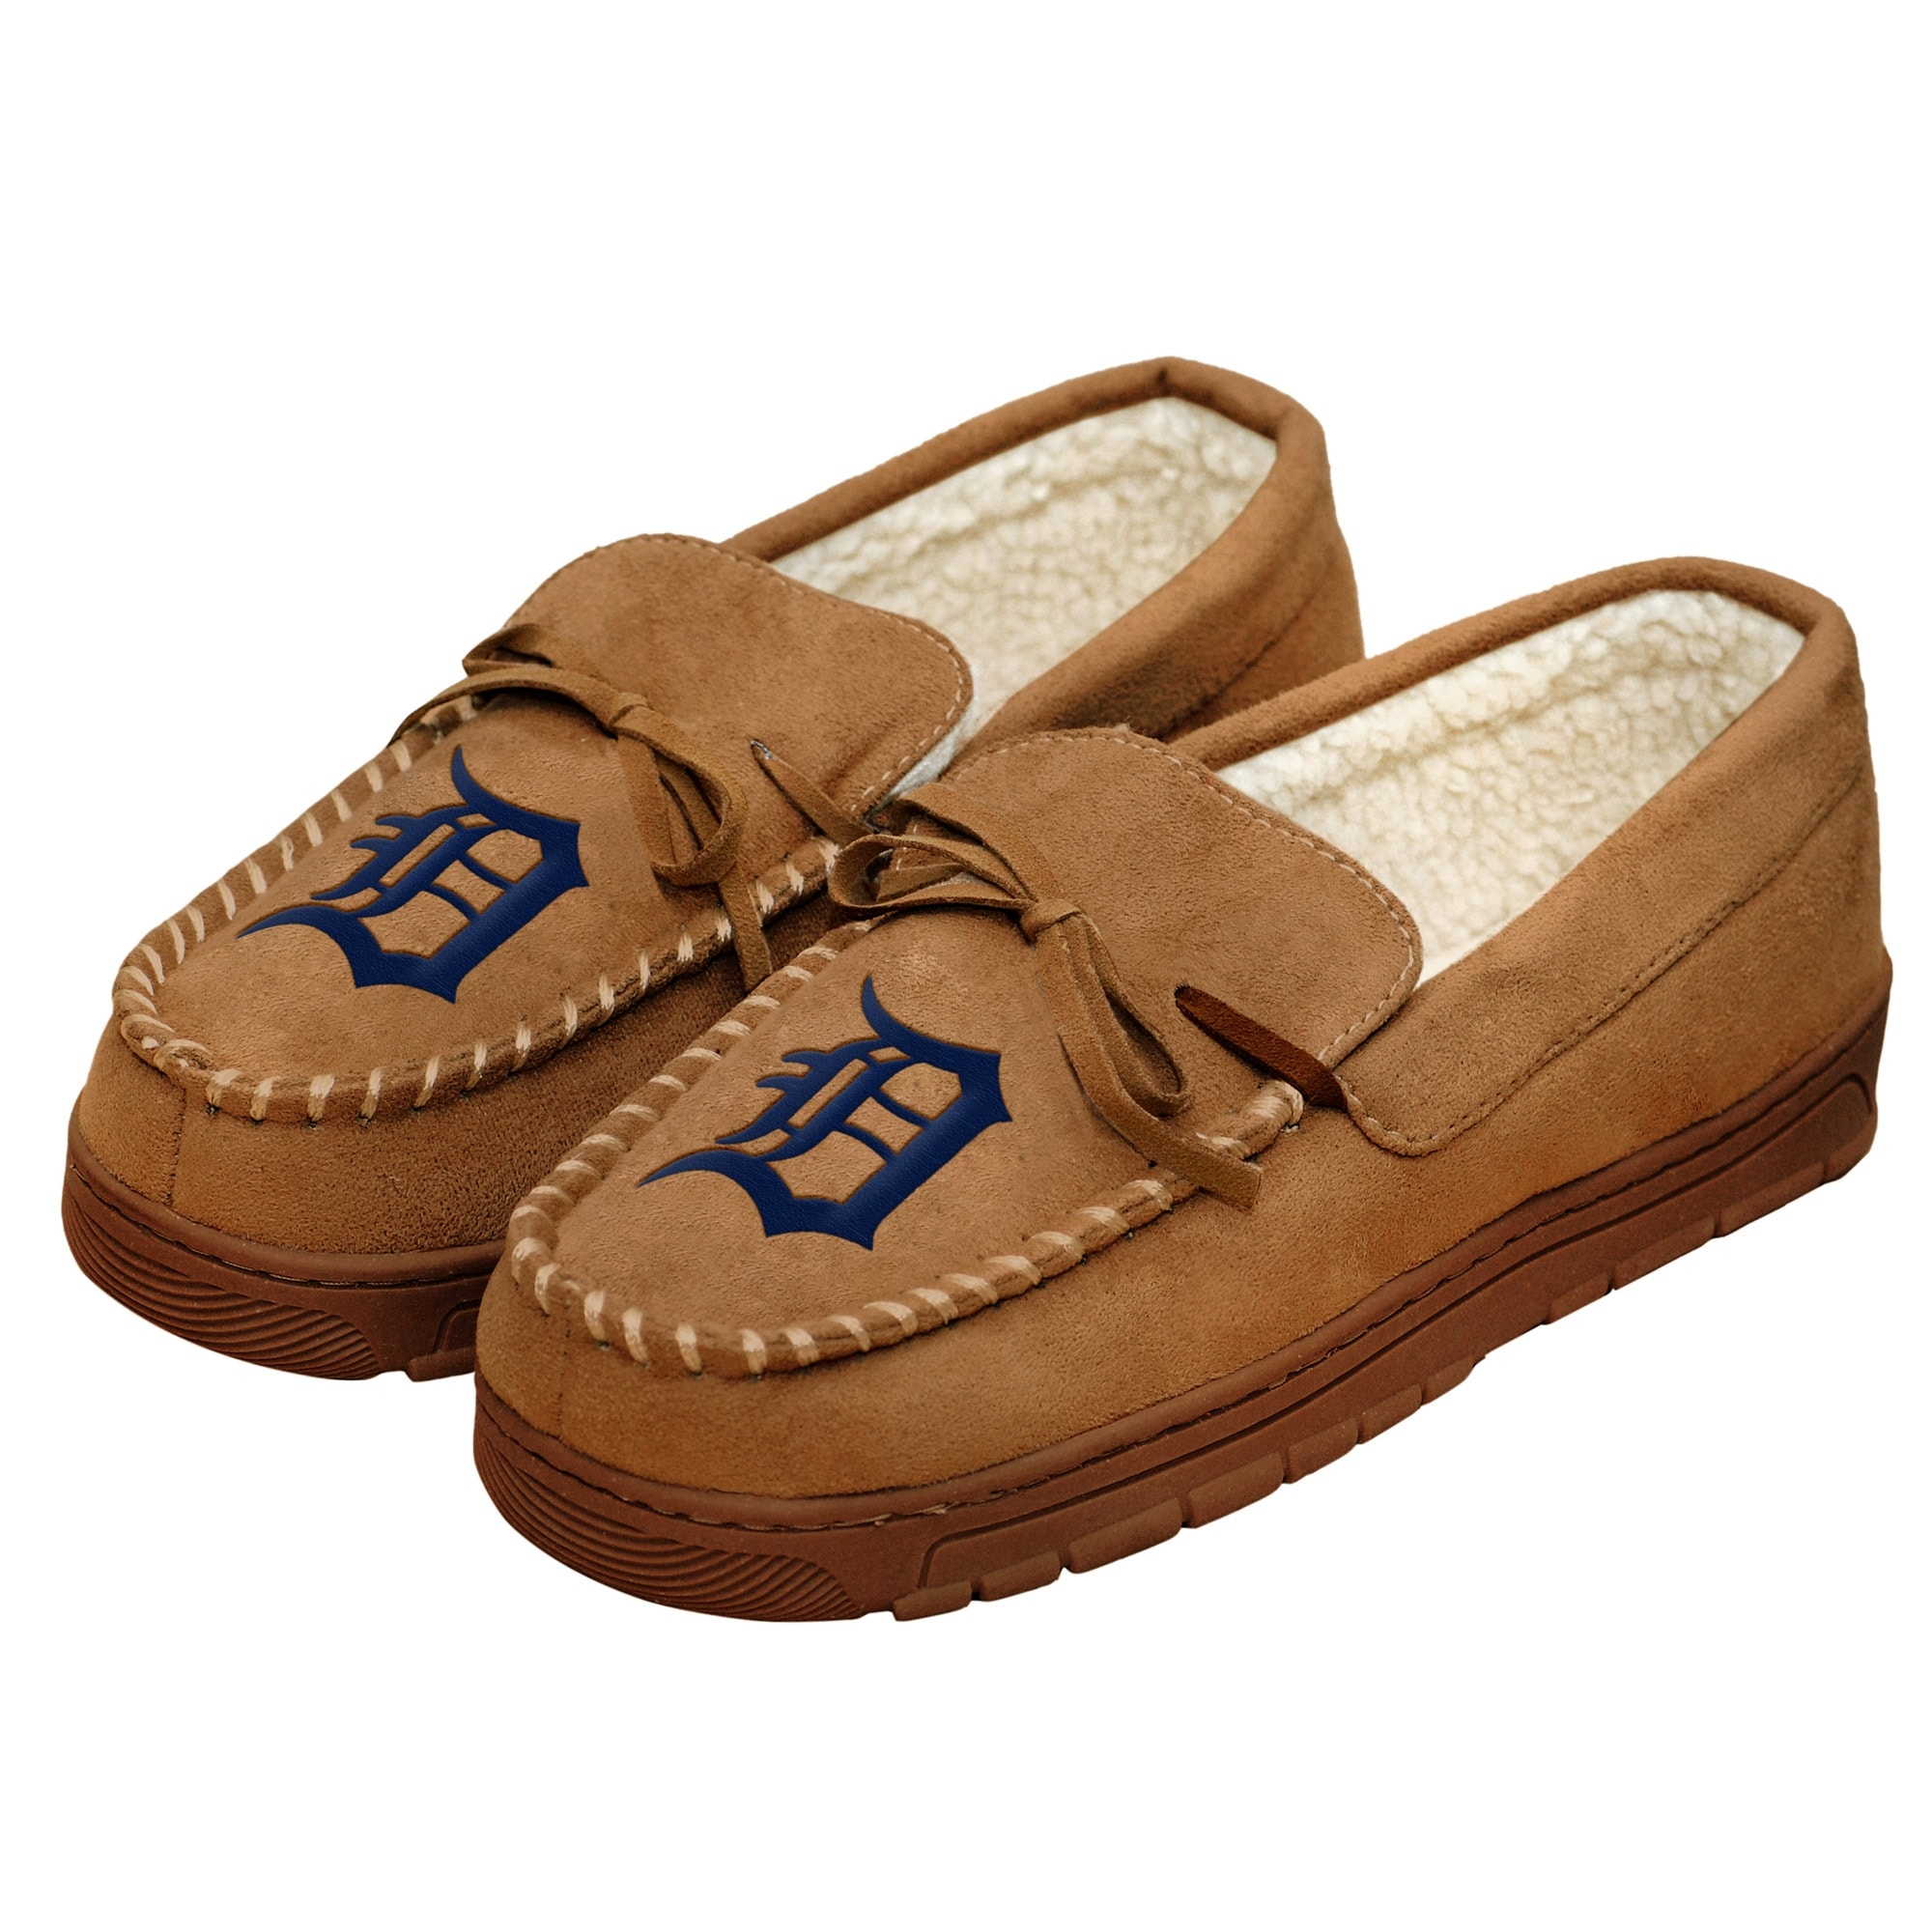 Detroit Tigers Moccasin Slippers